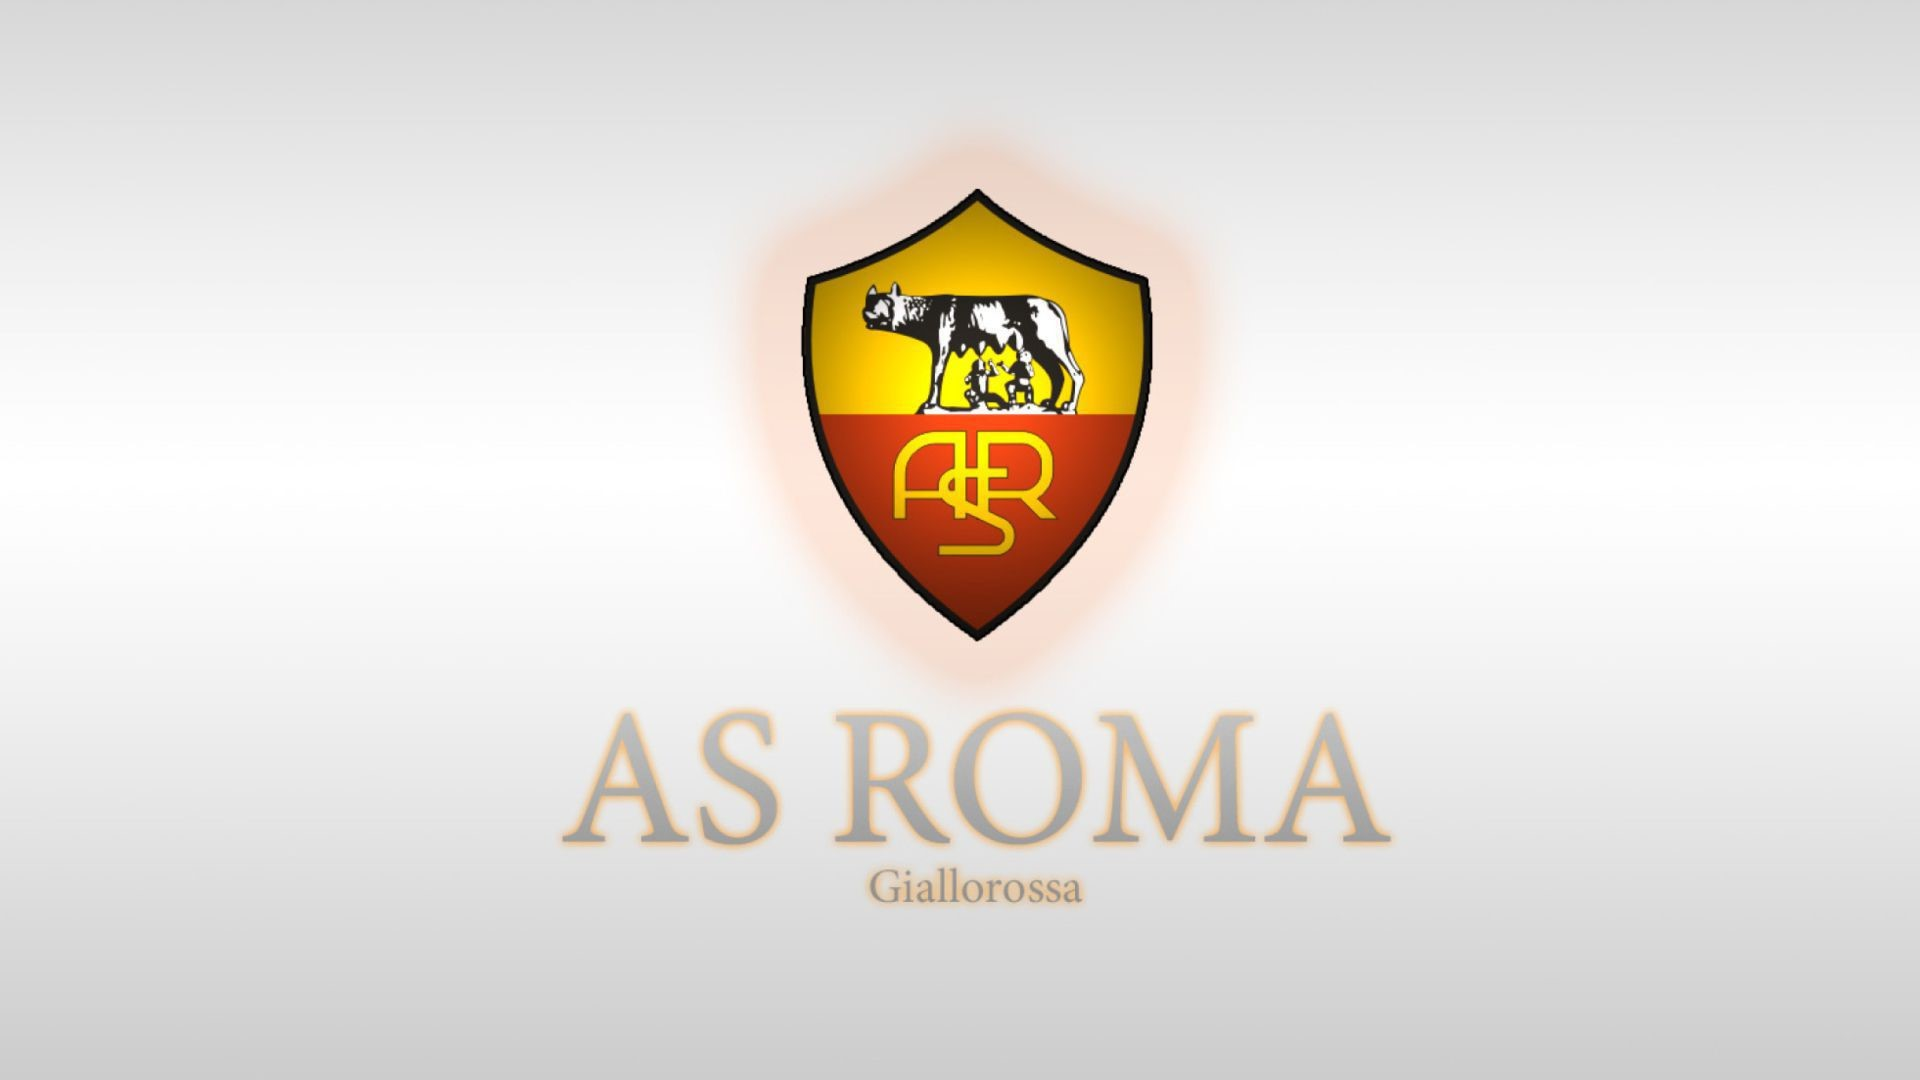 Roma images